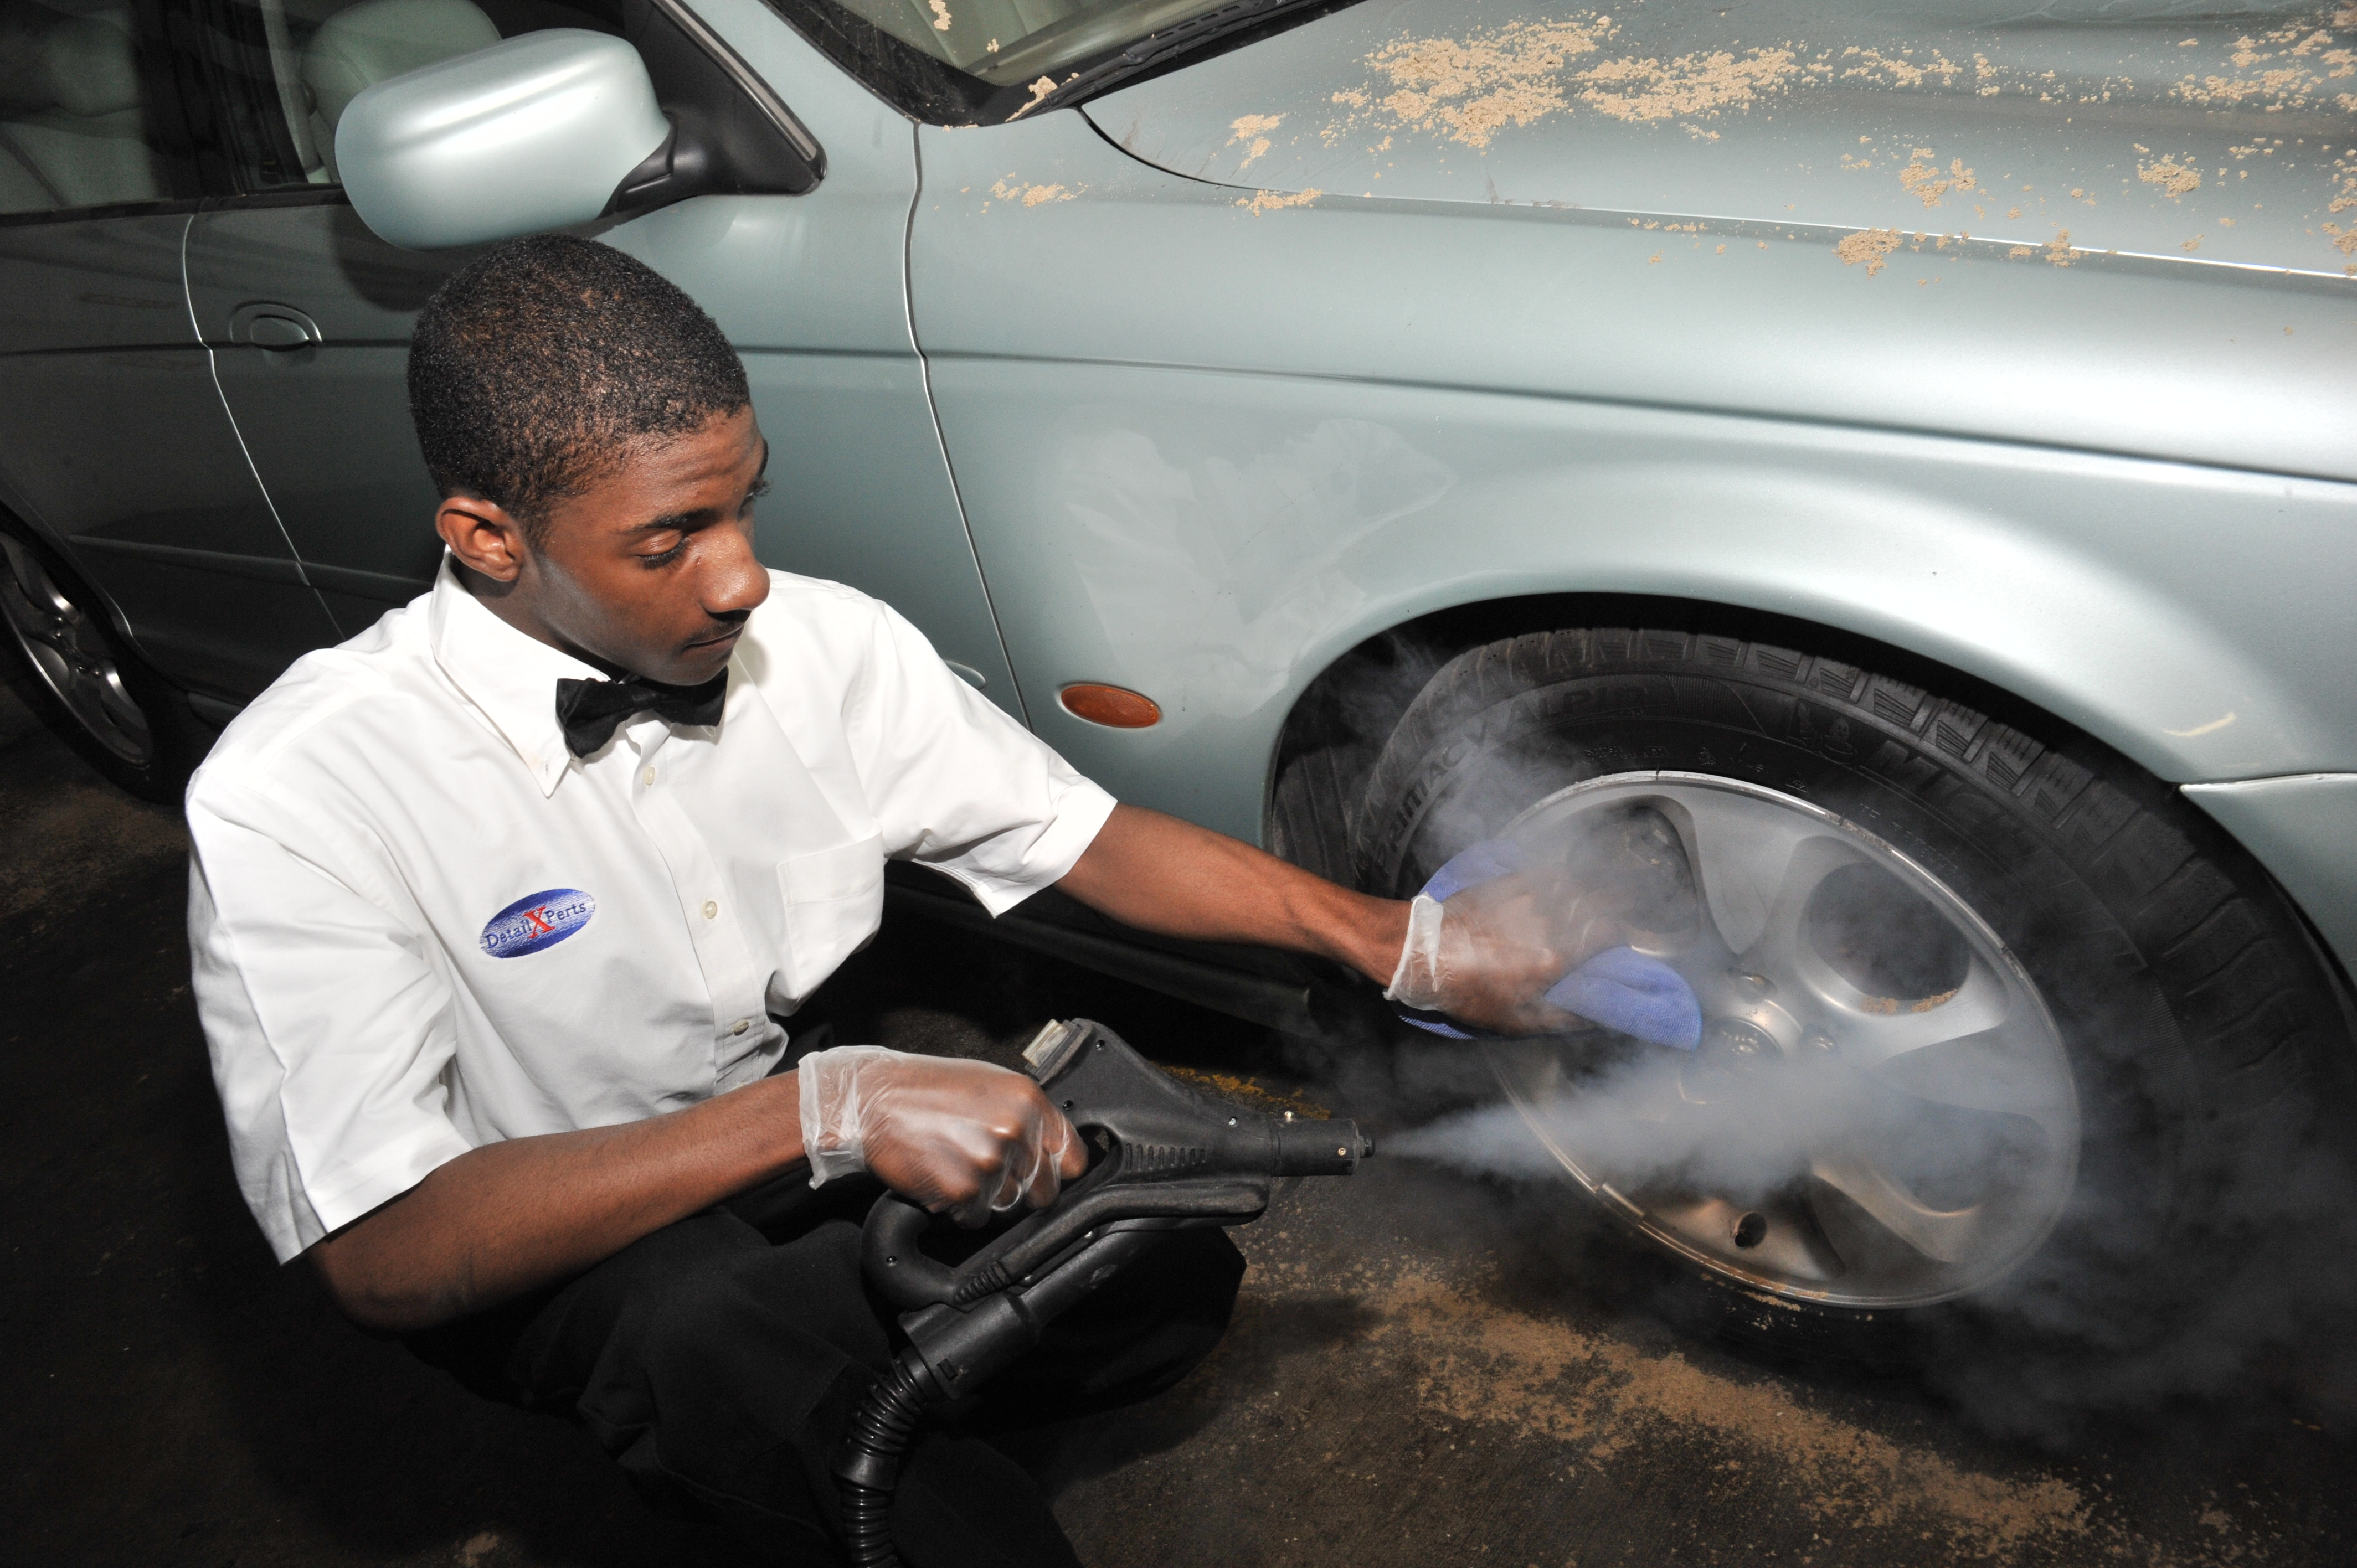 Steam clean your car exterior in 5 easy steps How to keep your car exterior clean